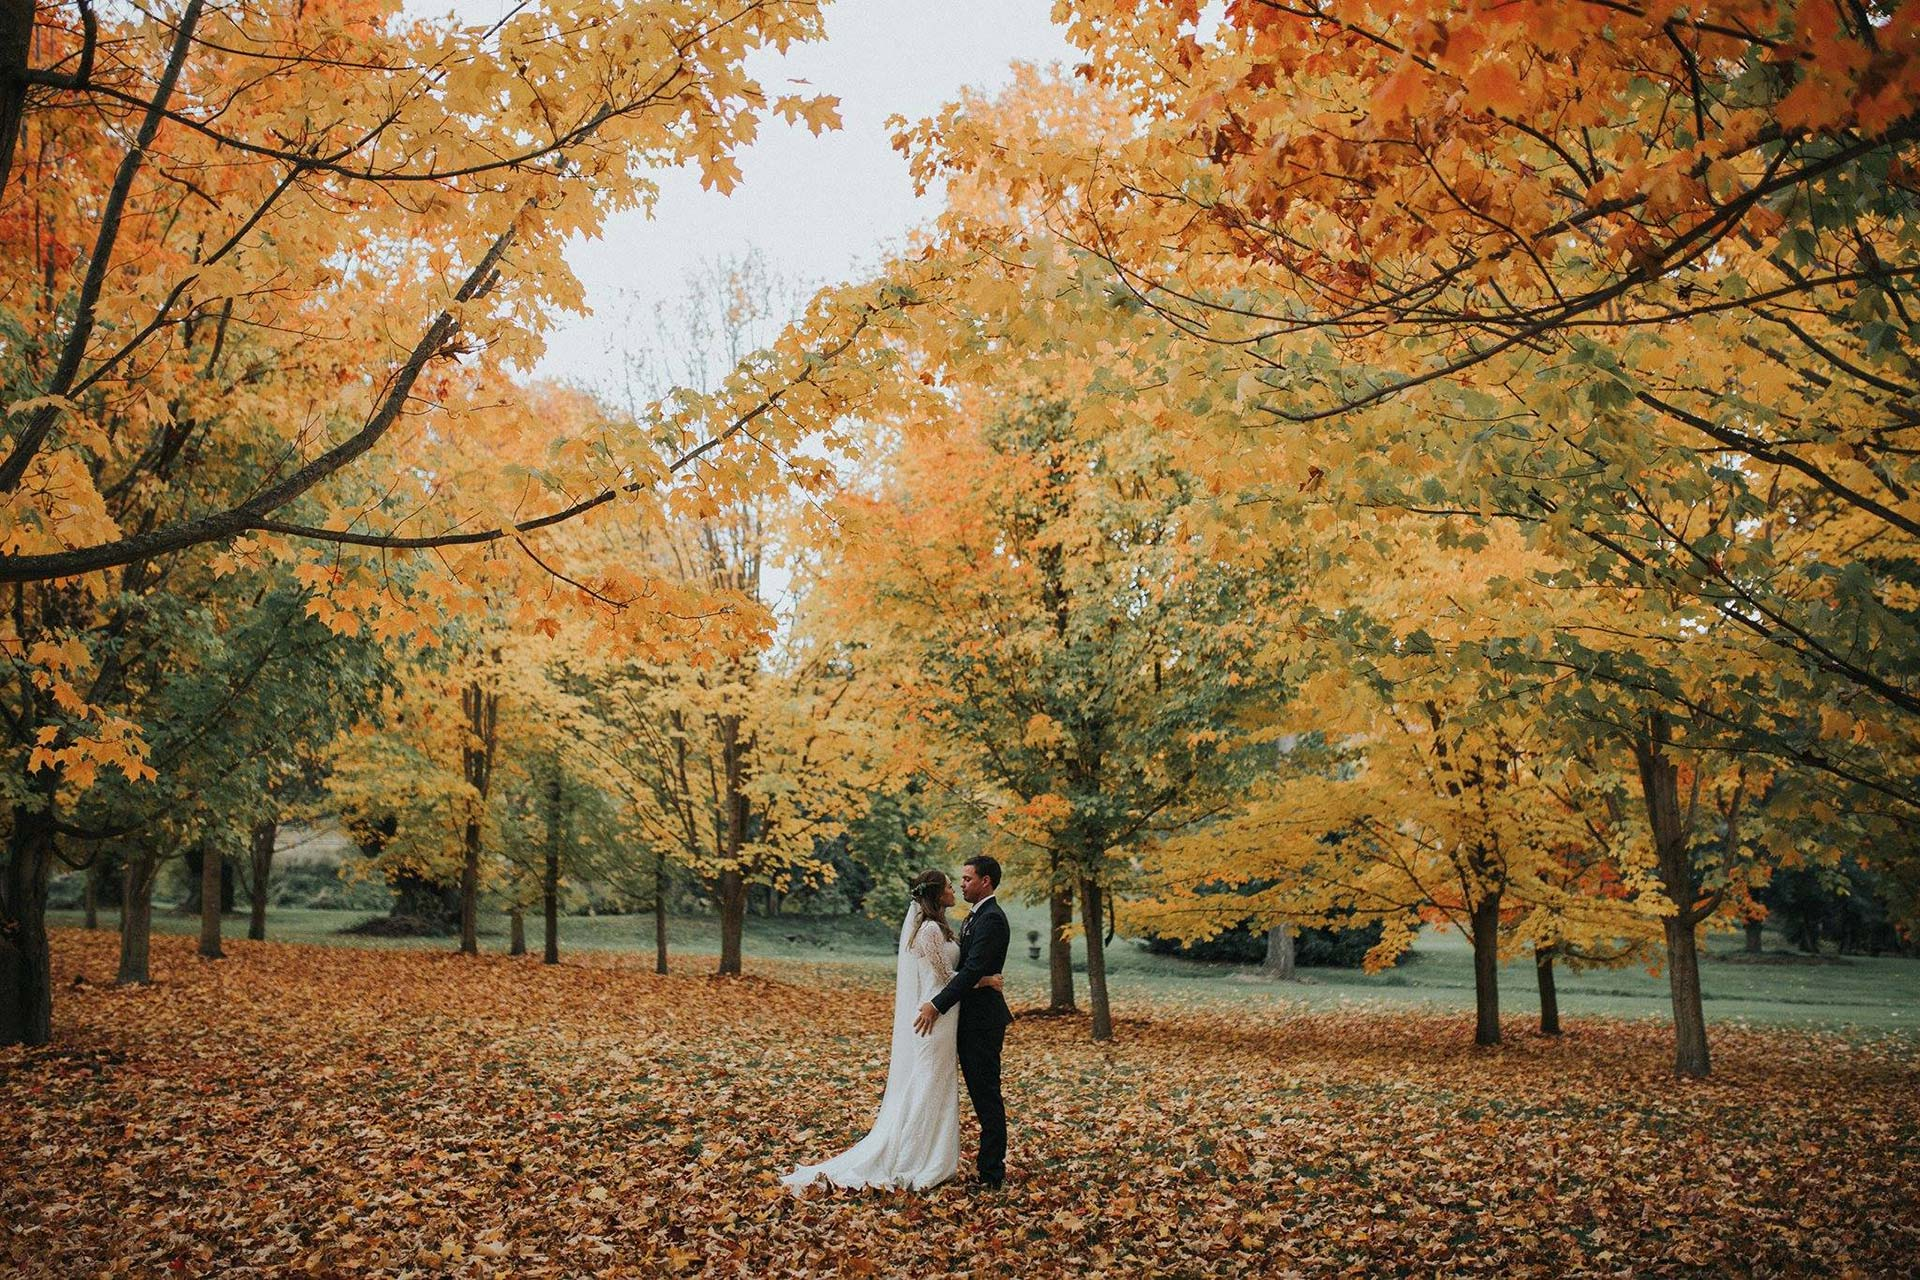 Casey & Aaron's Perfect Autumnal Wedding